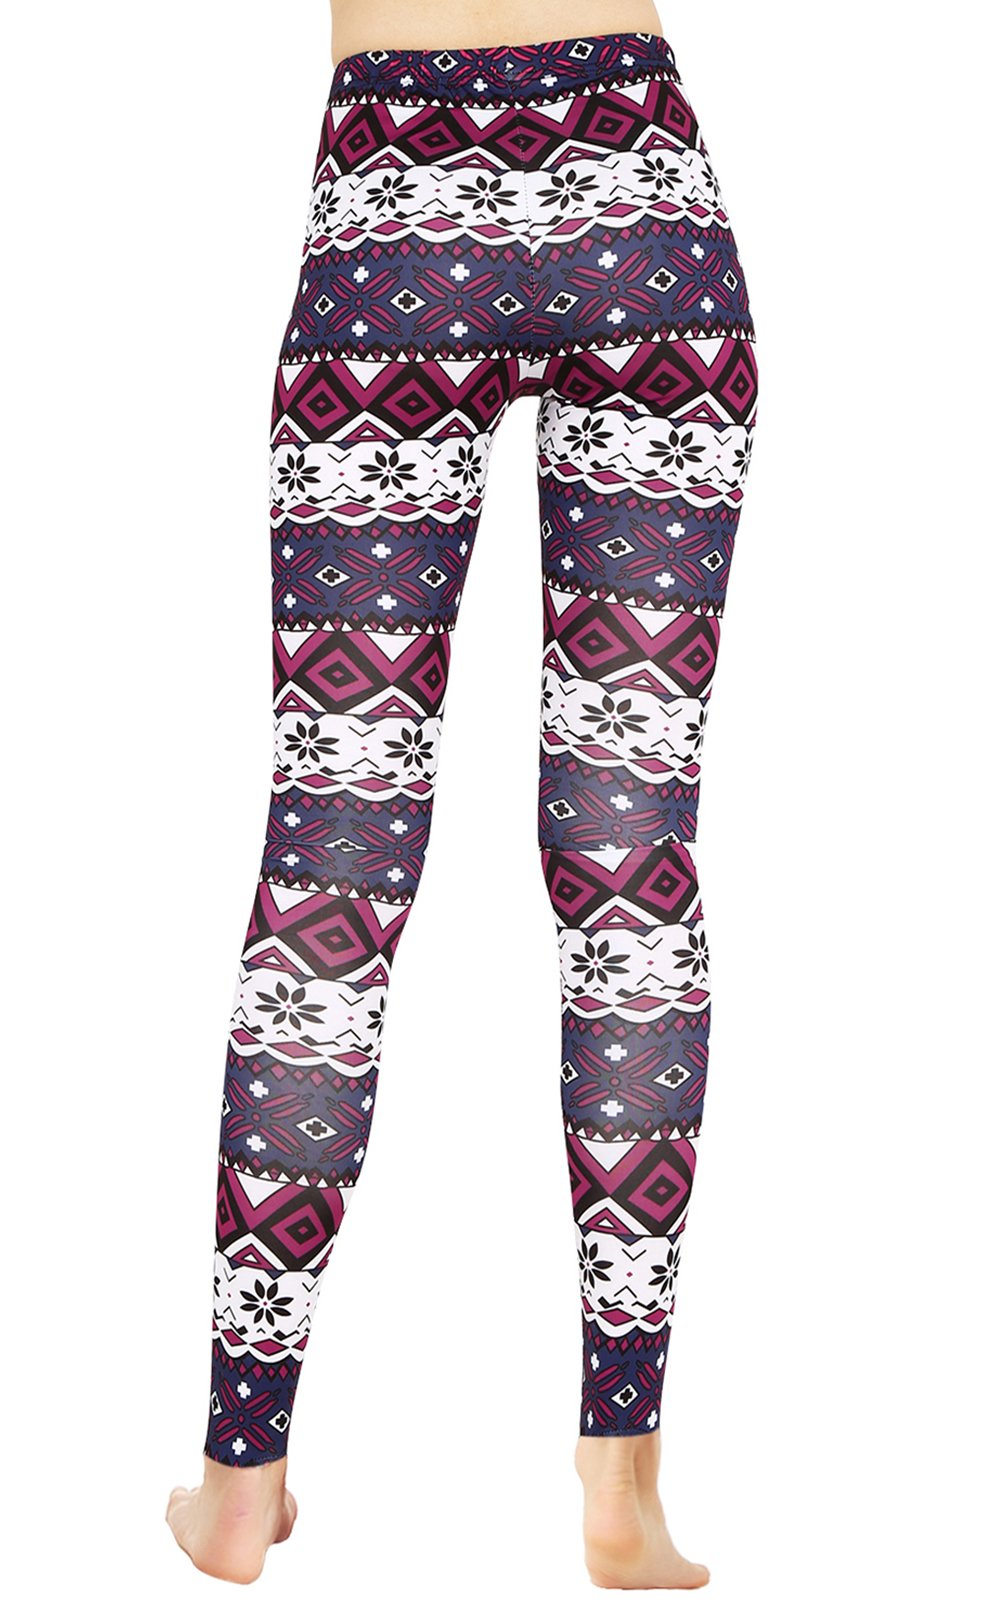 Purple Floral Print Stretch Leggings Pants for Women Graphic Patterned Tights L